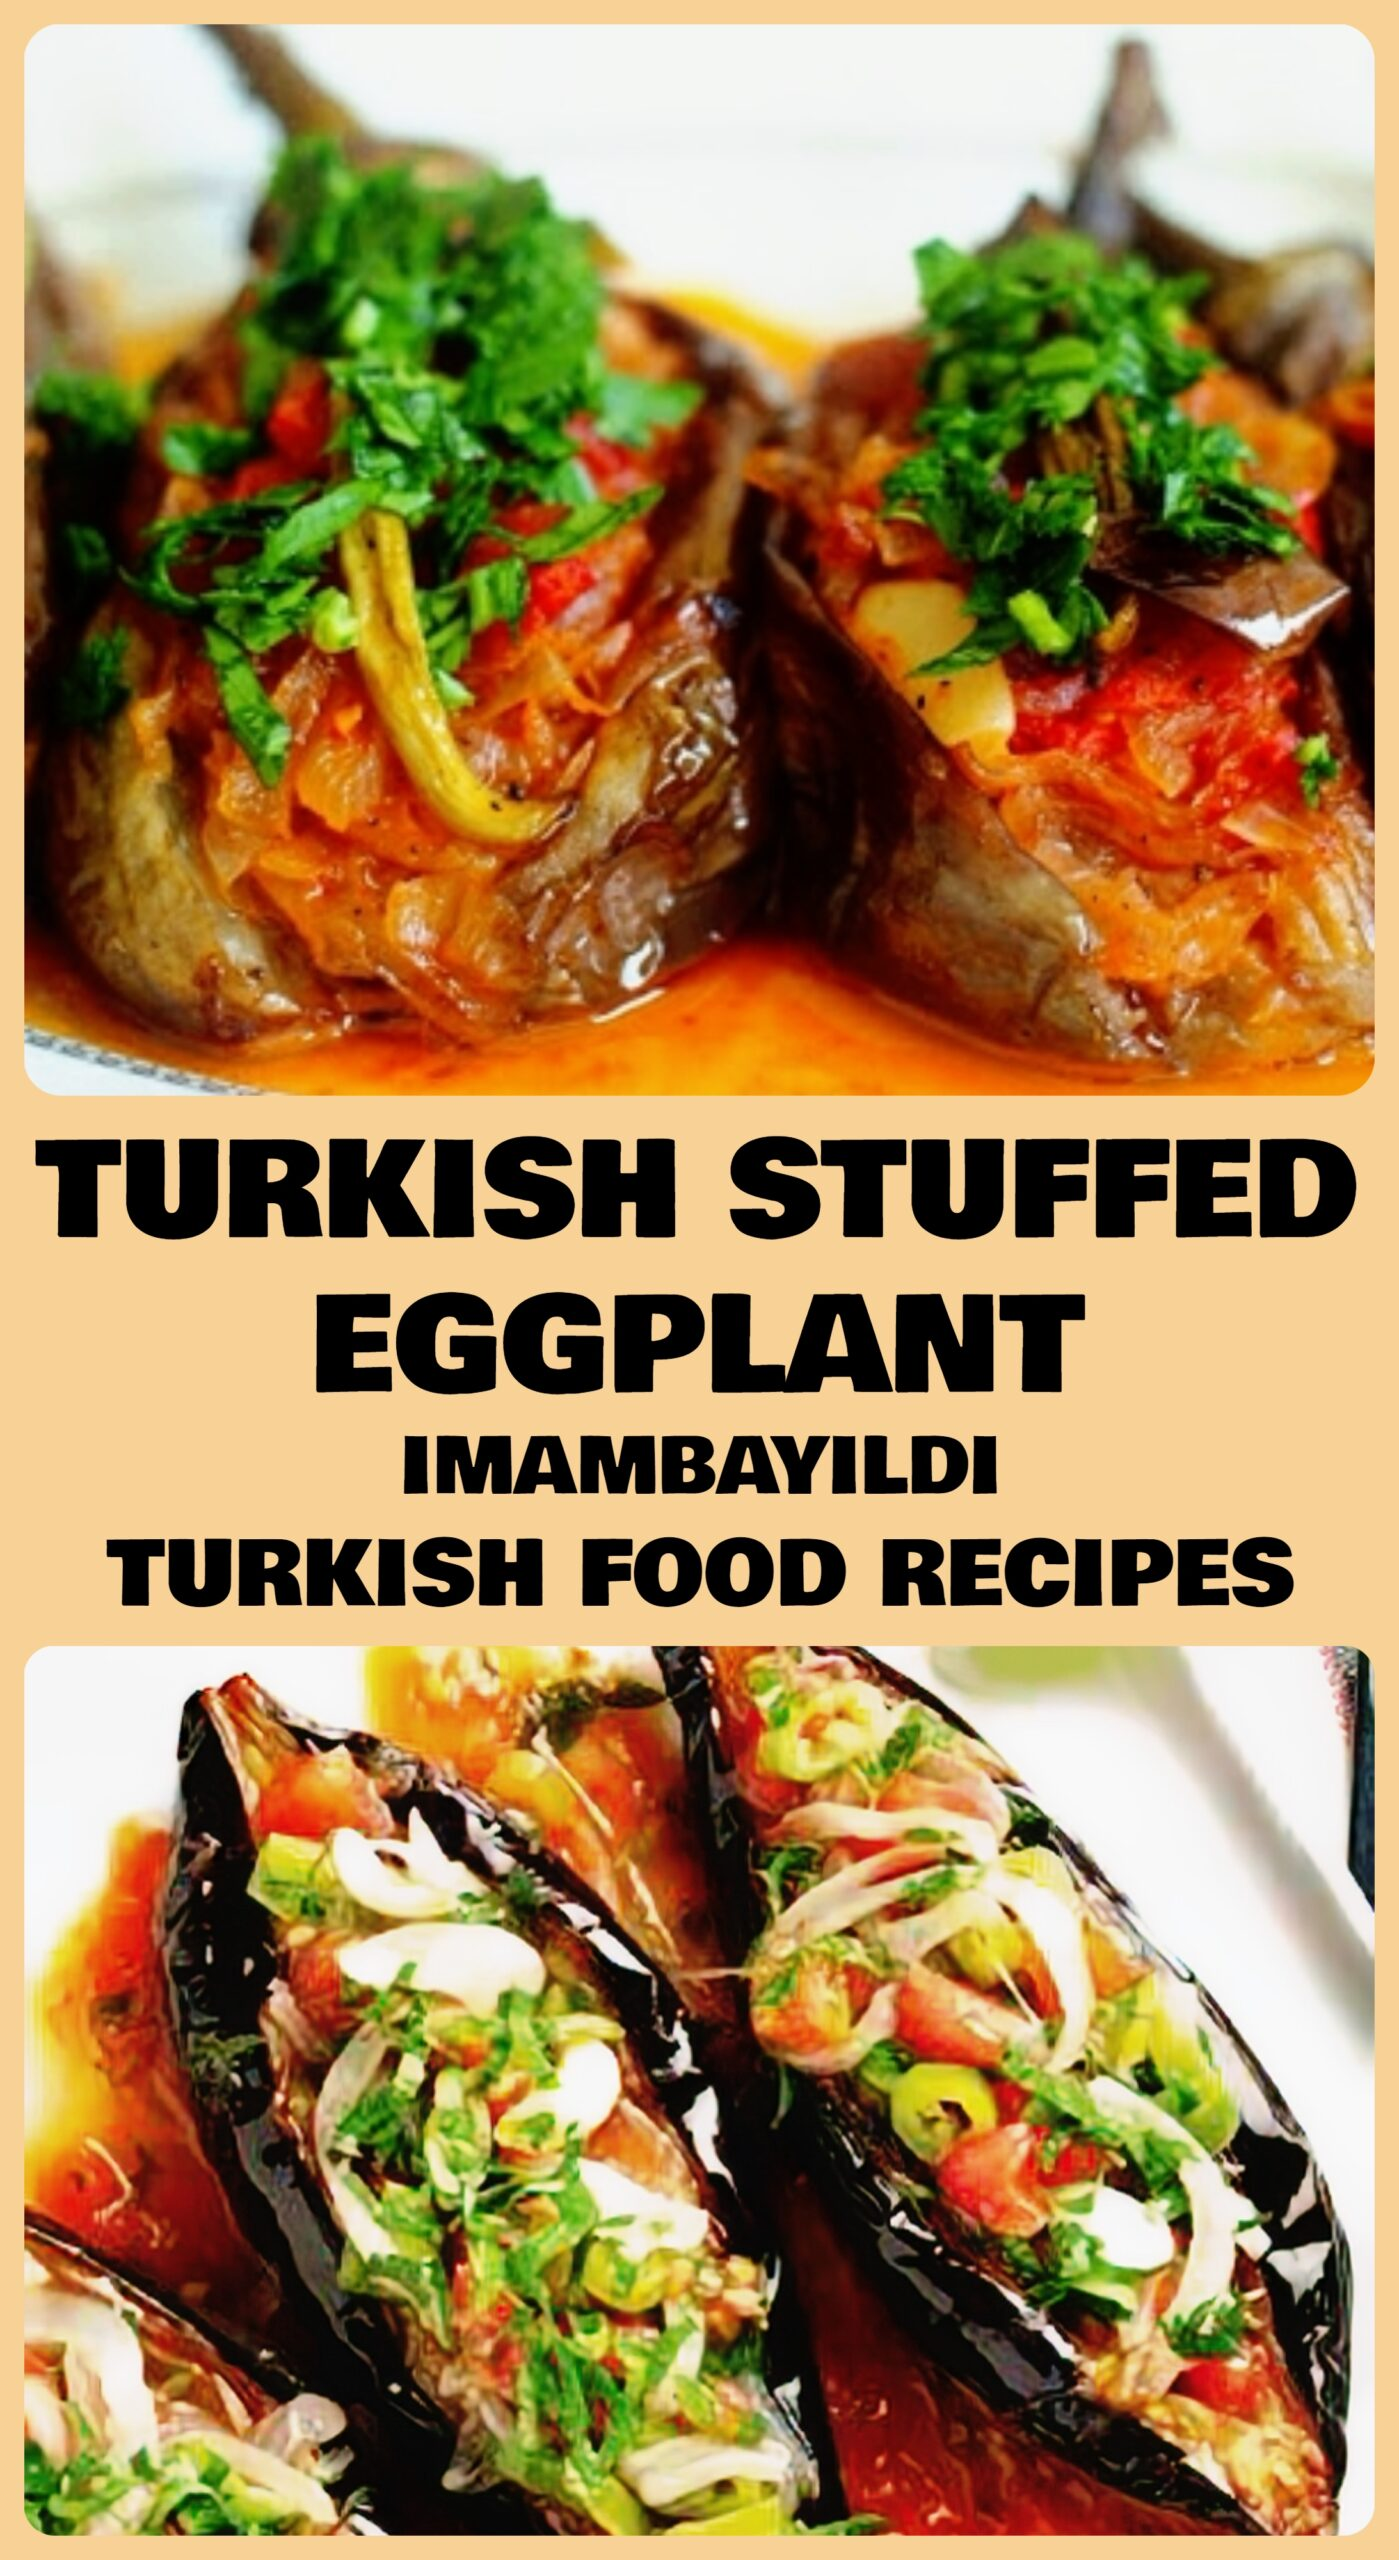 Turkish Stuffed Eggplant - Imambayildi Recipe